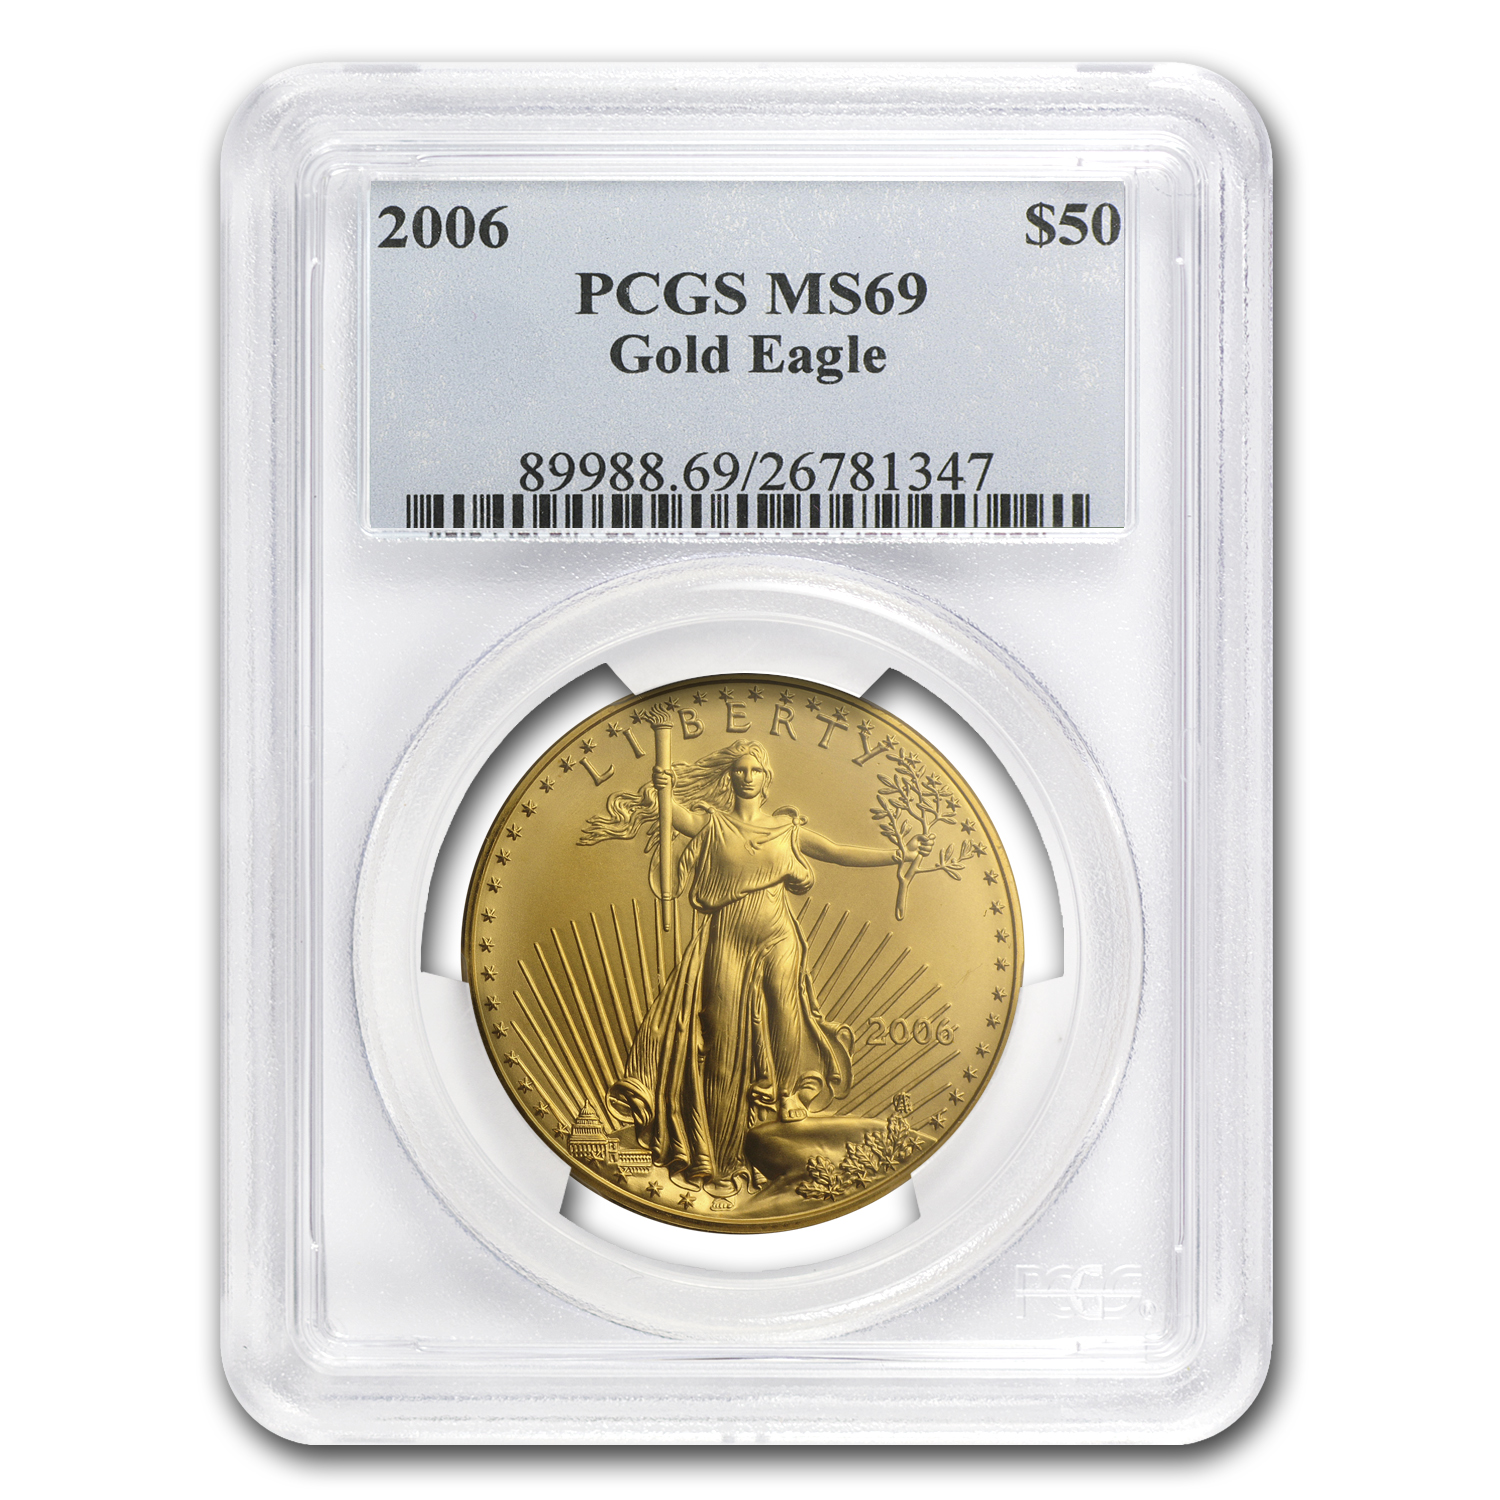 2006 1 oz Gold American Eagle MS-69 PCGS